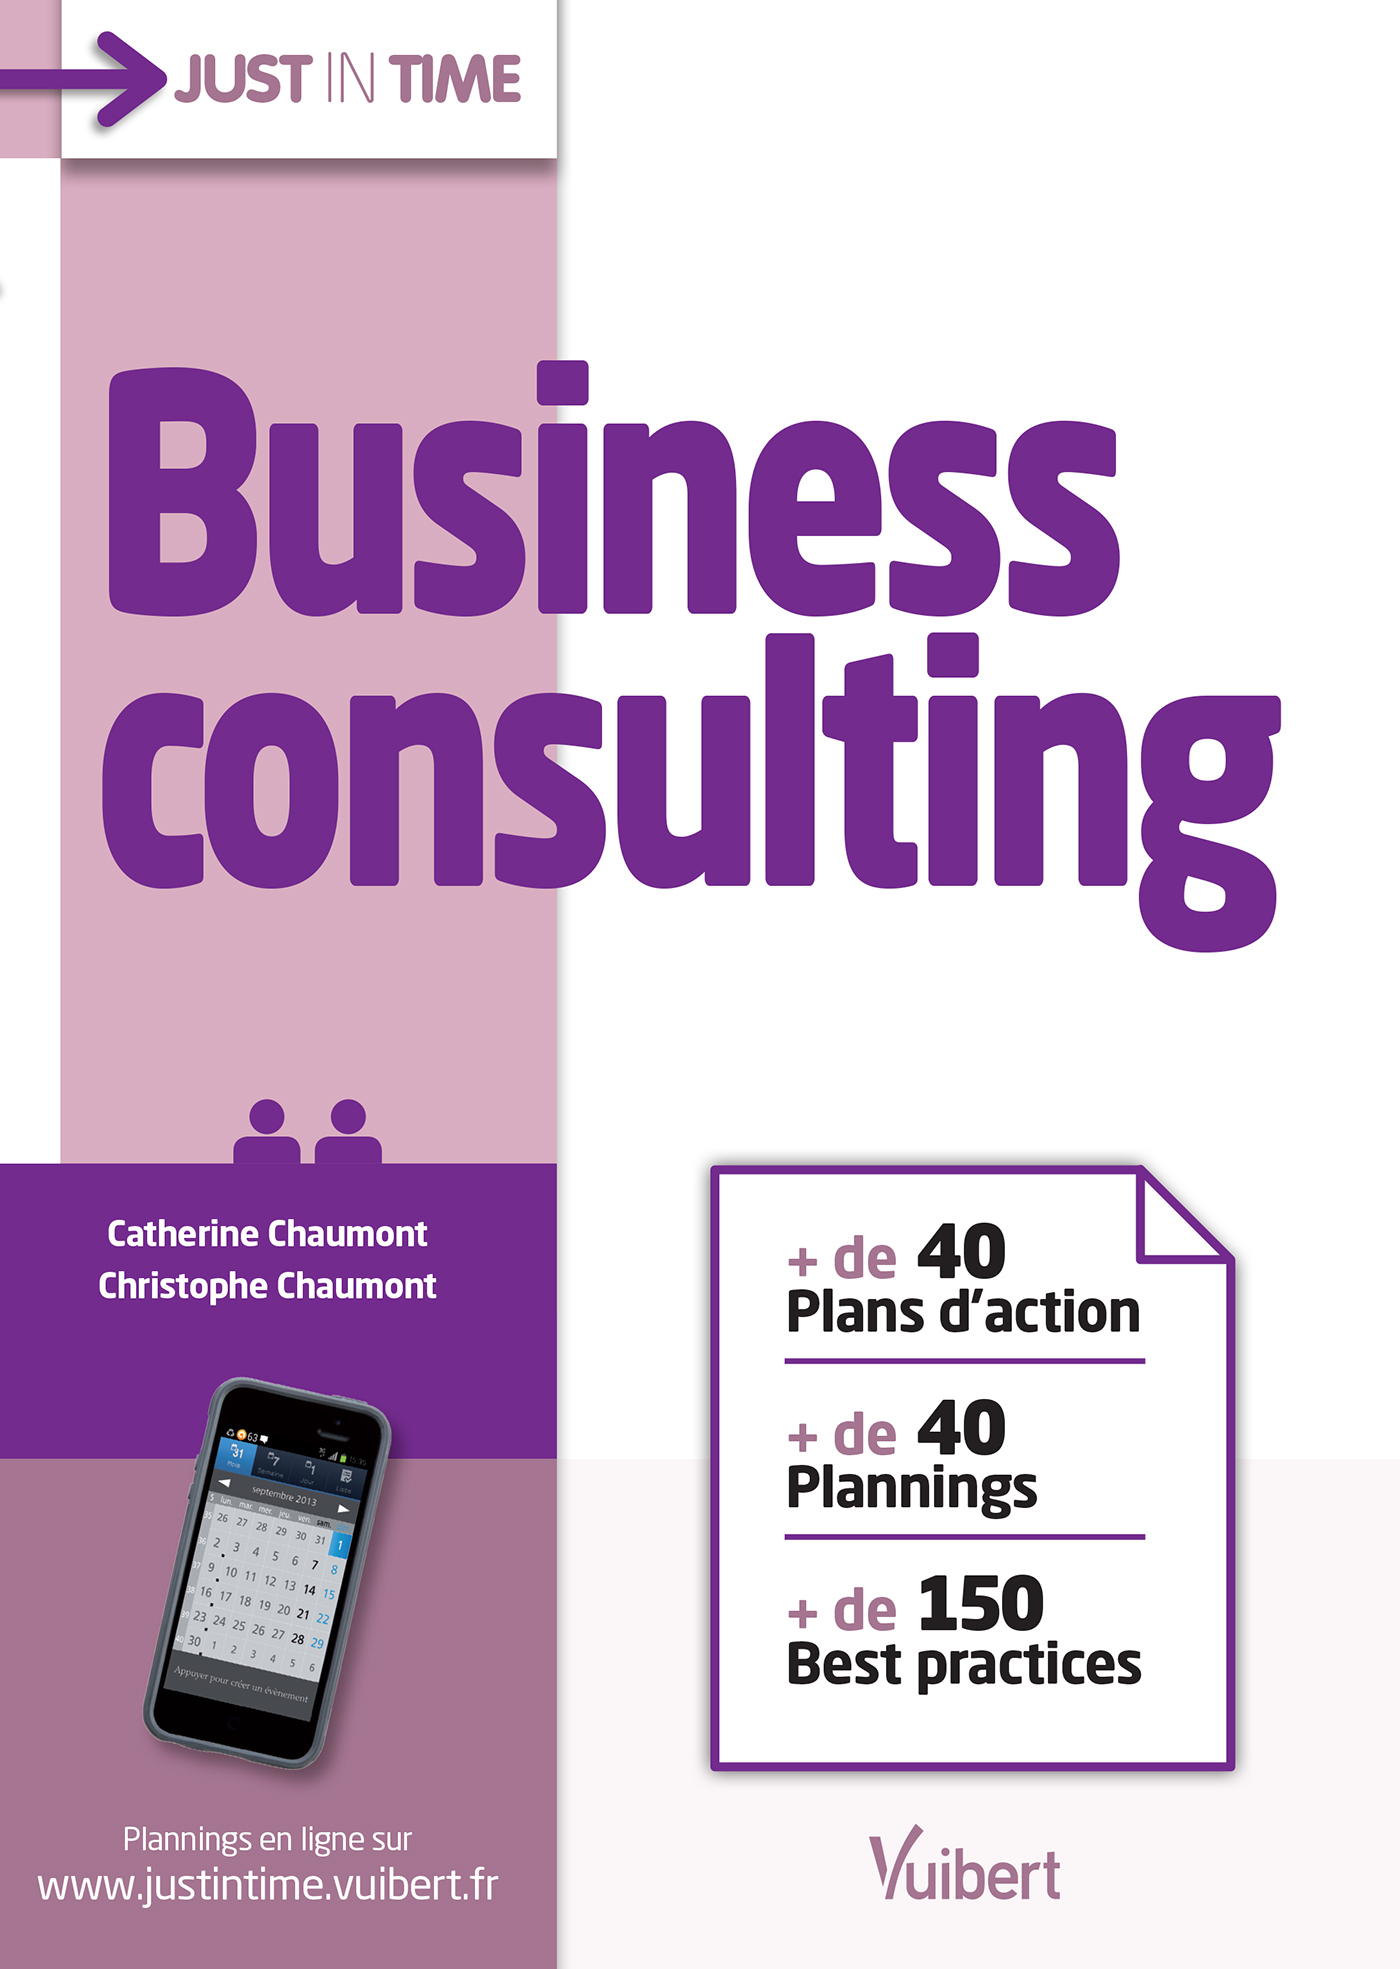 BUSINESS CONSULTING JUST IN TIME